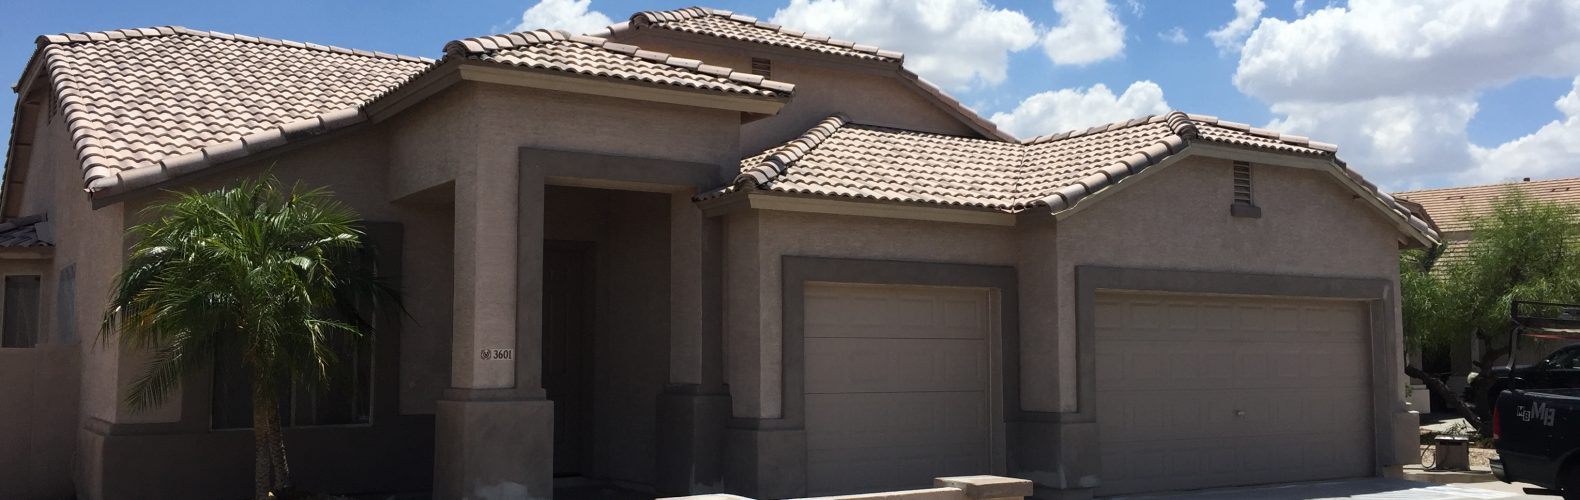 House painting near gilbert arizona